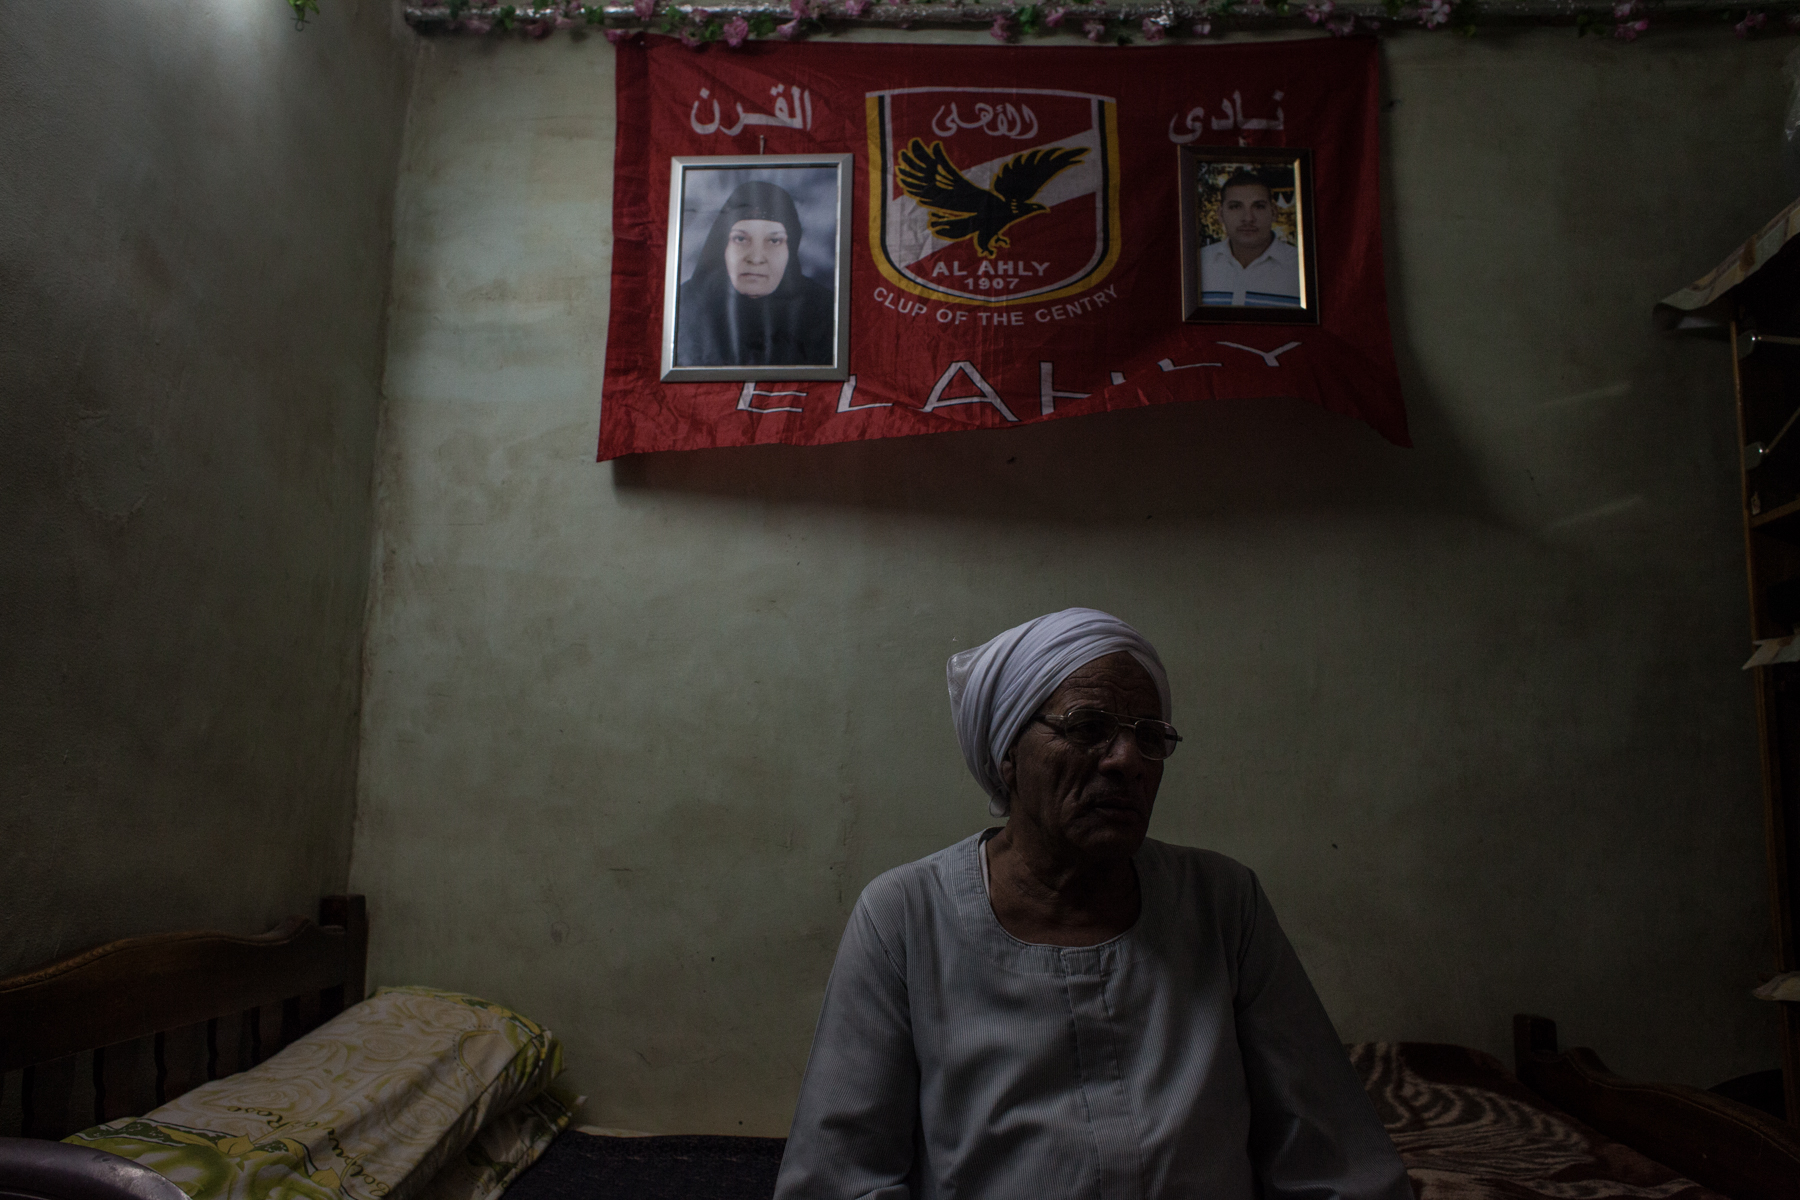 father of Ultra Youssef who died in Port Said. He is sitting in front of a Al-Ahly flag and pictures of his deceased wife and son